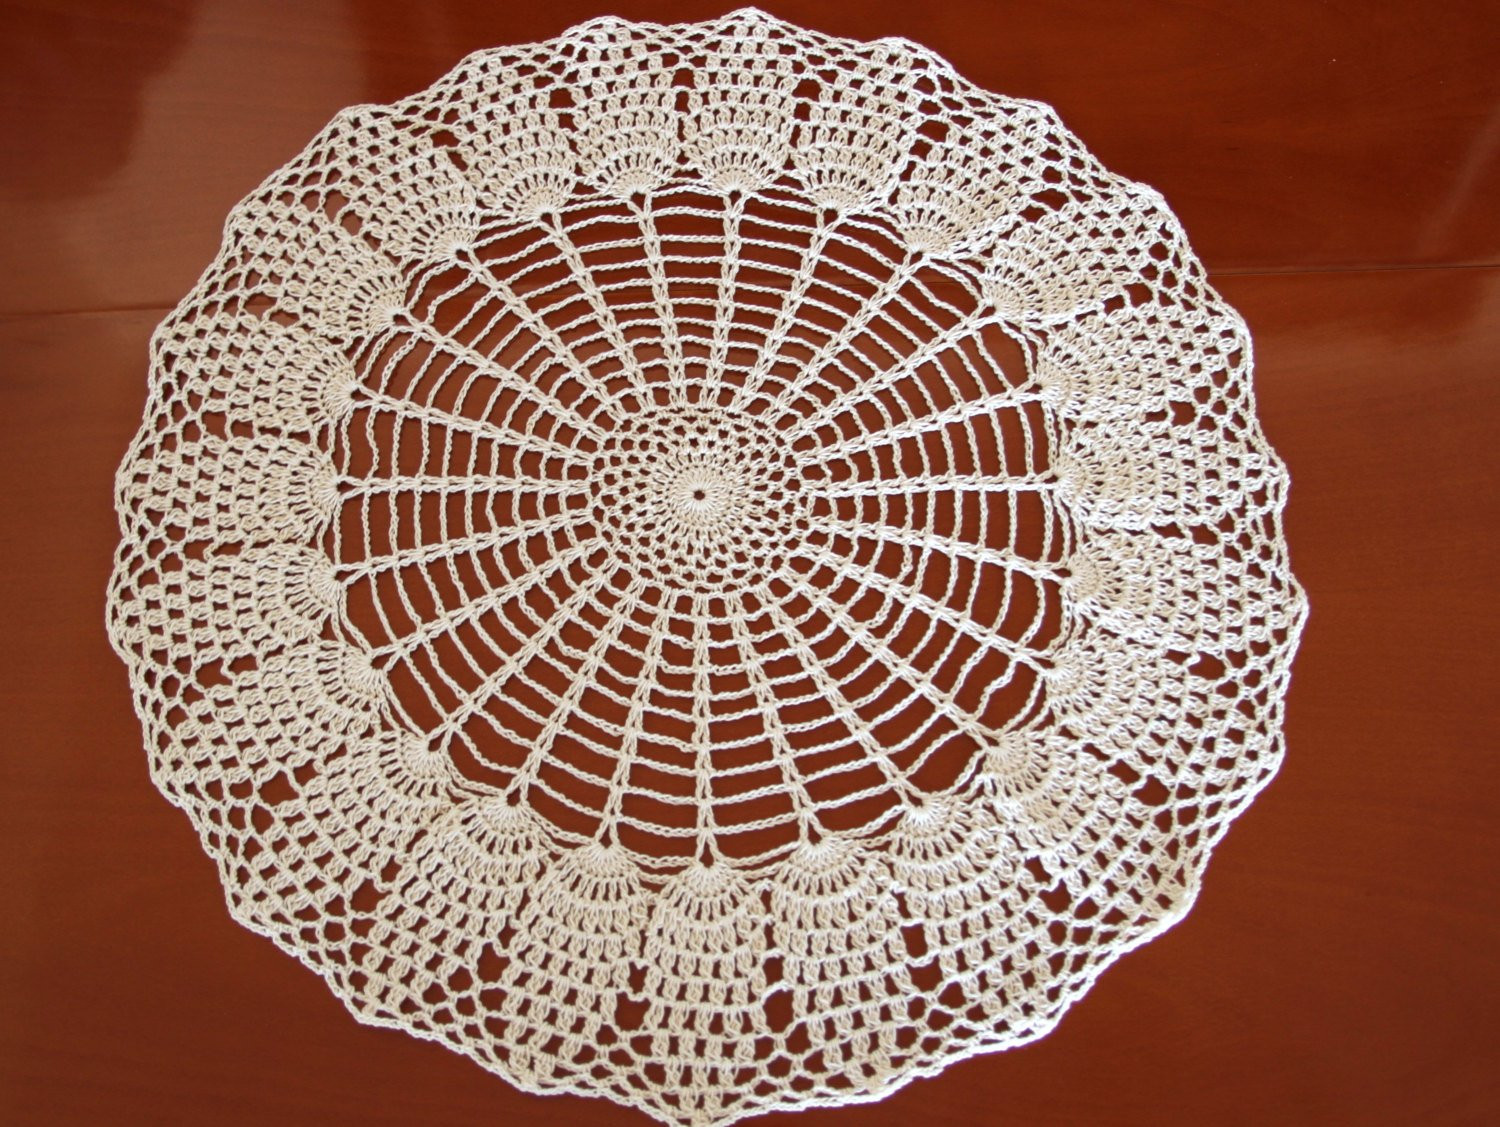 Doily Tablecloth New Crochet Round Pineapple Doily Pattern Pdf Tutorial Vintage Of Charming 49 Pictures Doily Tablecloth